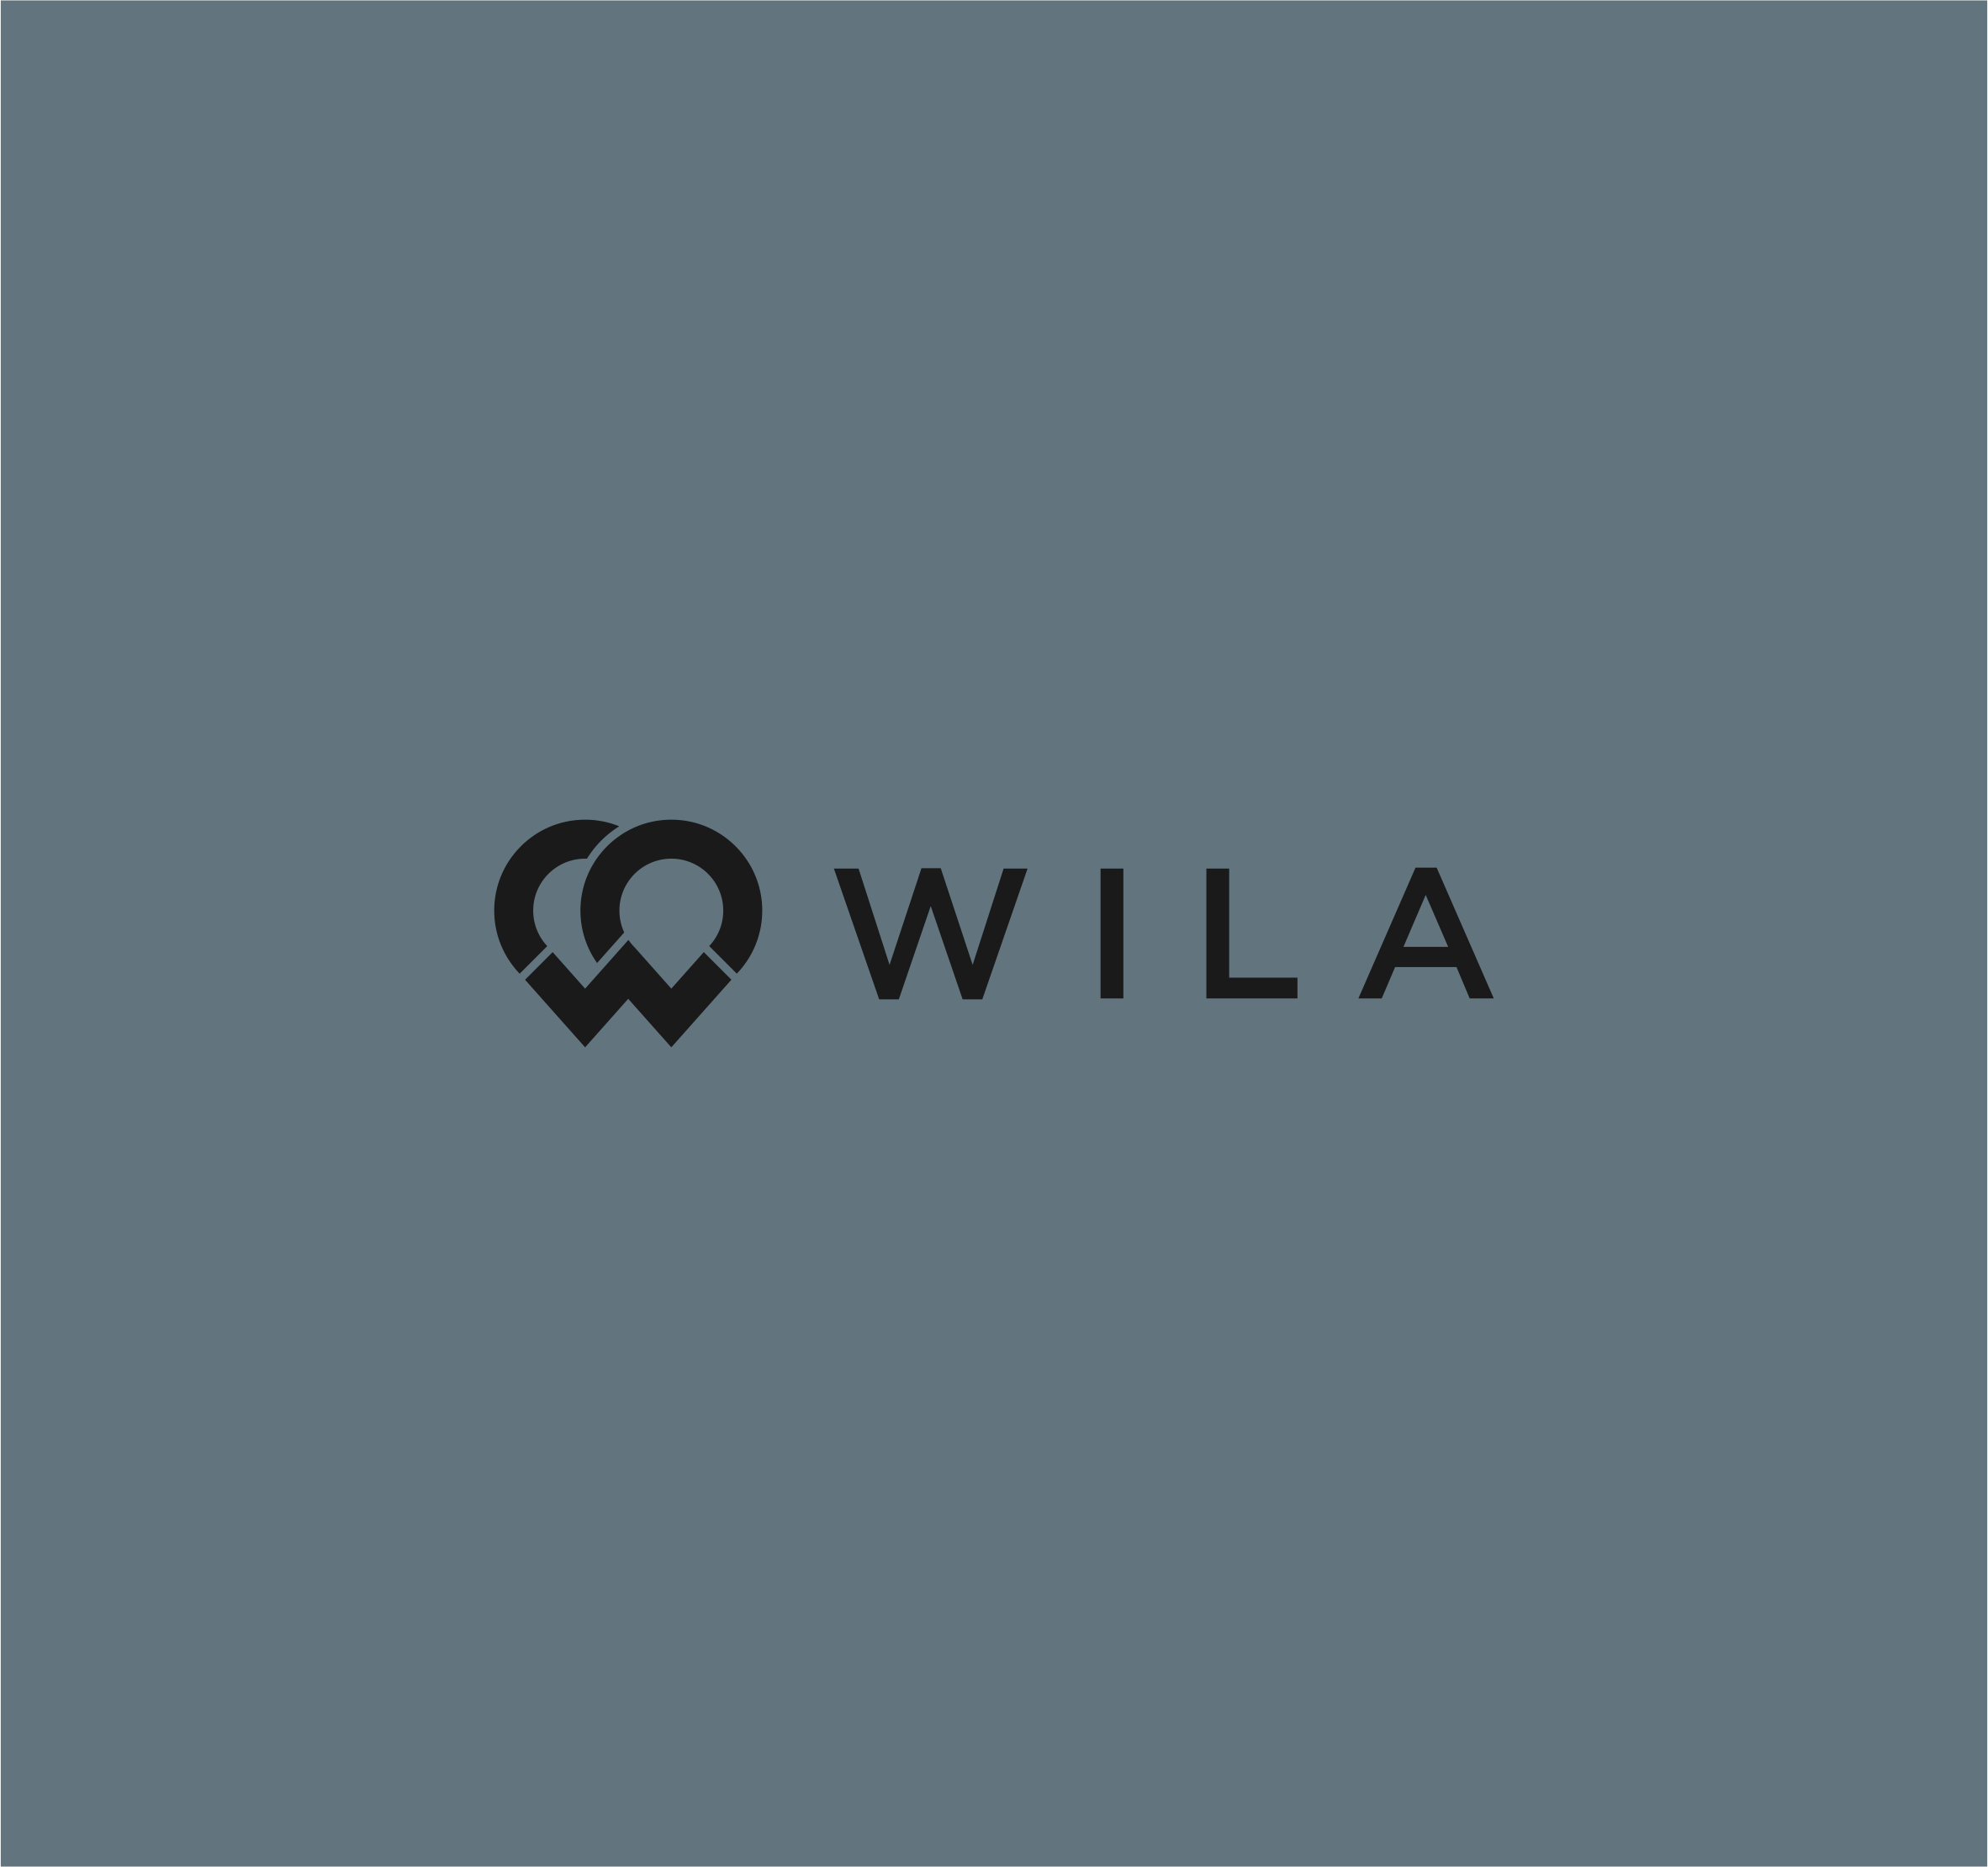 *no new submissions pls* Design a logo for a travel app 'Wila' that's for you & your friends